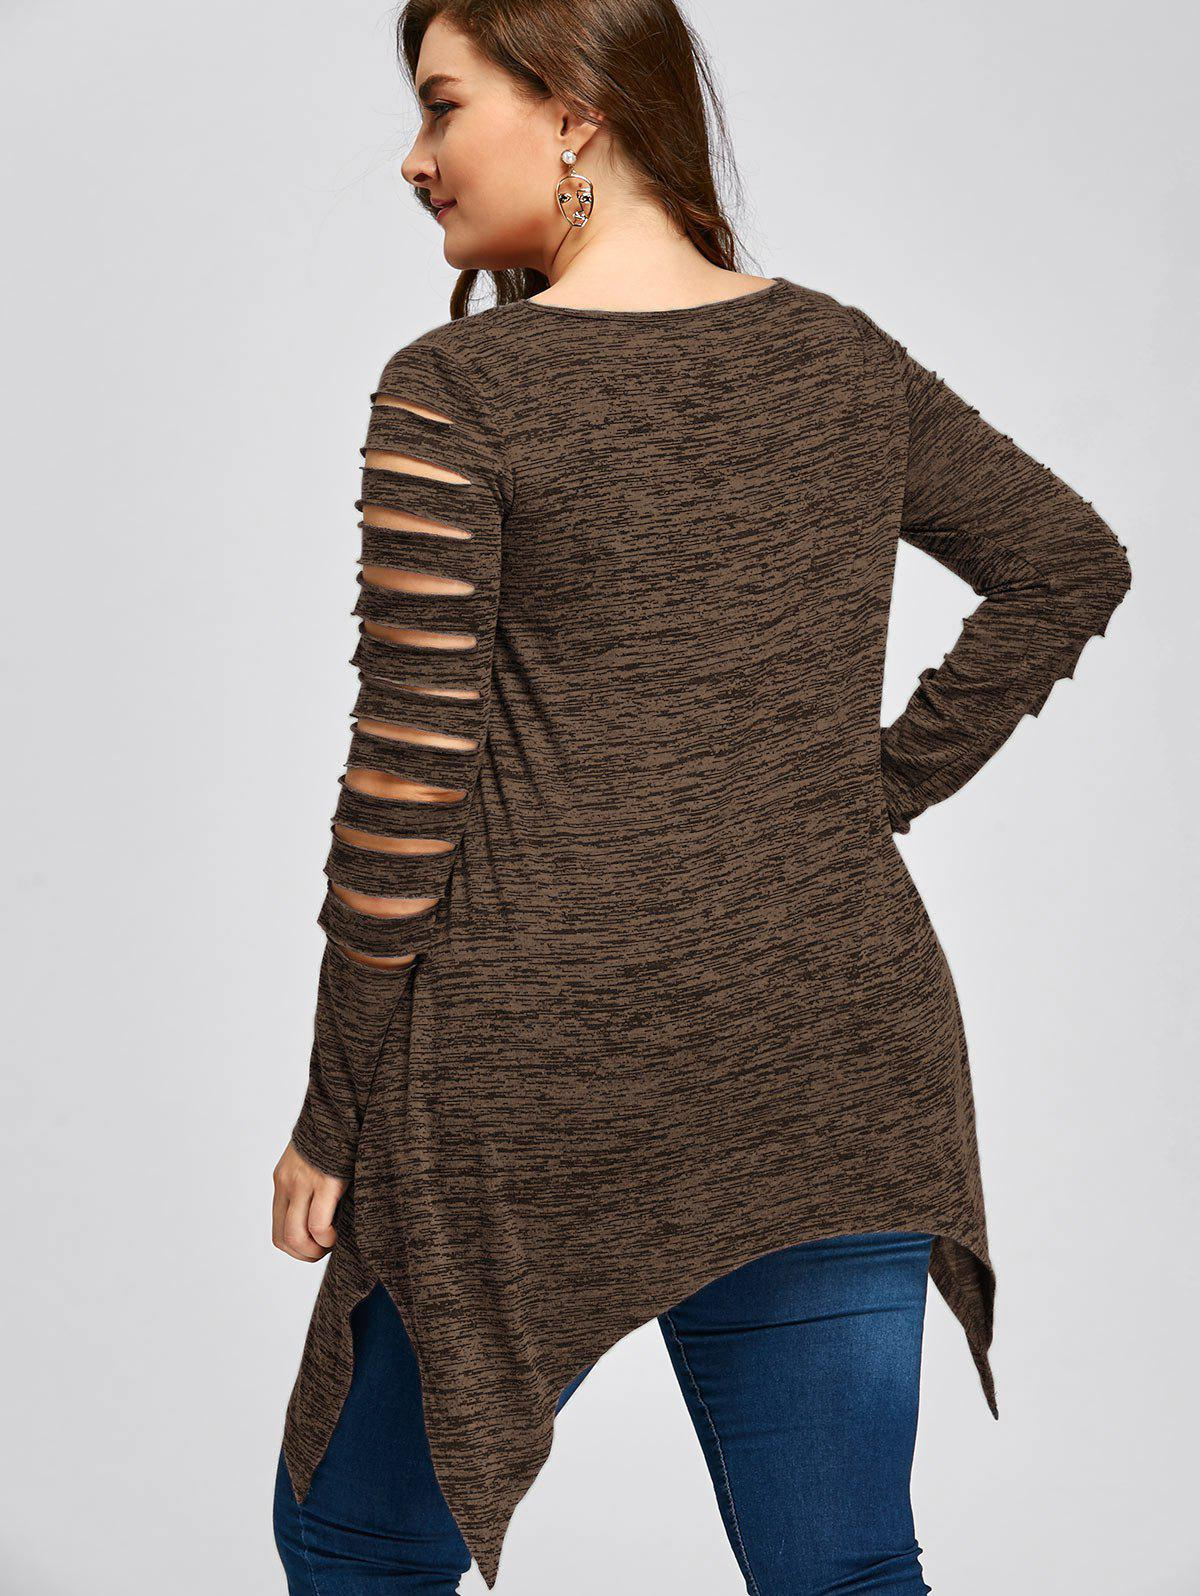 Plus Size Marled Ripped Sleeve Handkerchief Top - COFFEE 2XL